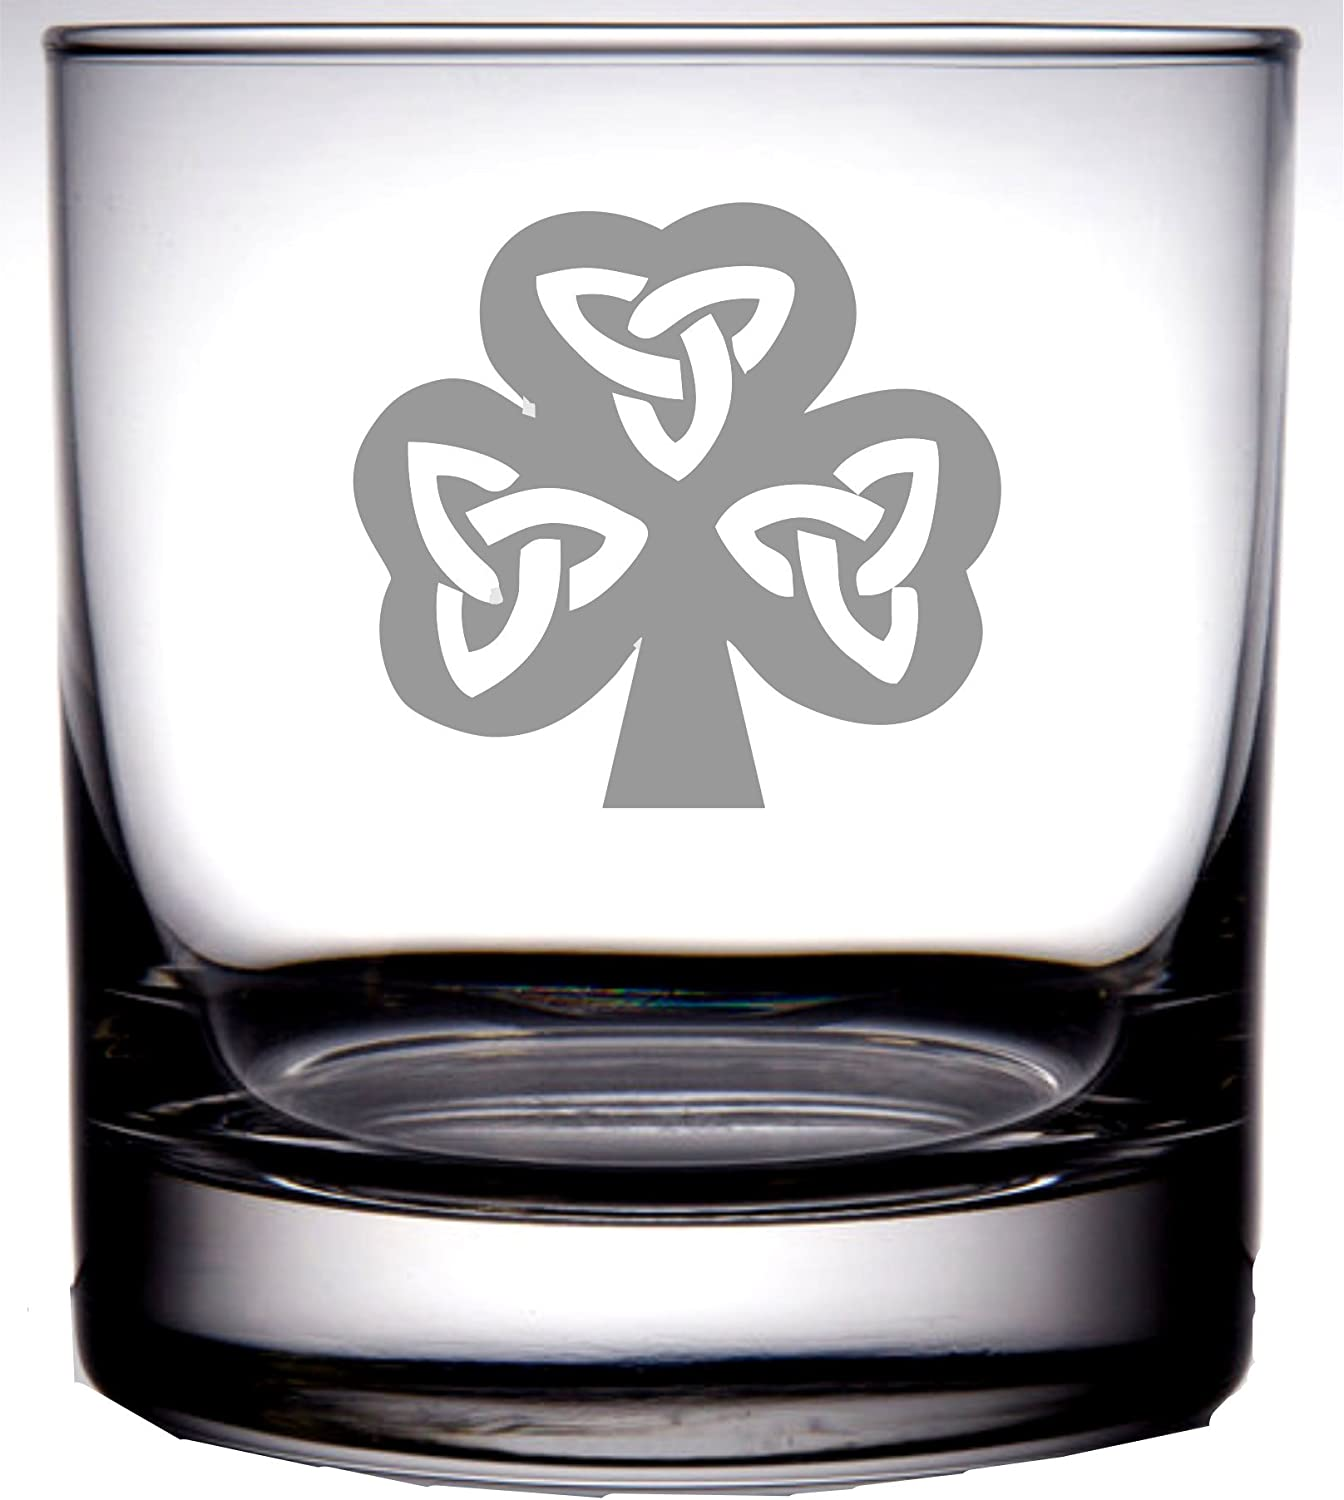 IE Laserware Bourbon is permanently etched on this 12.5 oz Rocks glass